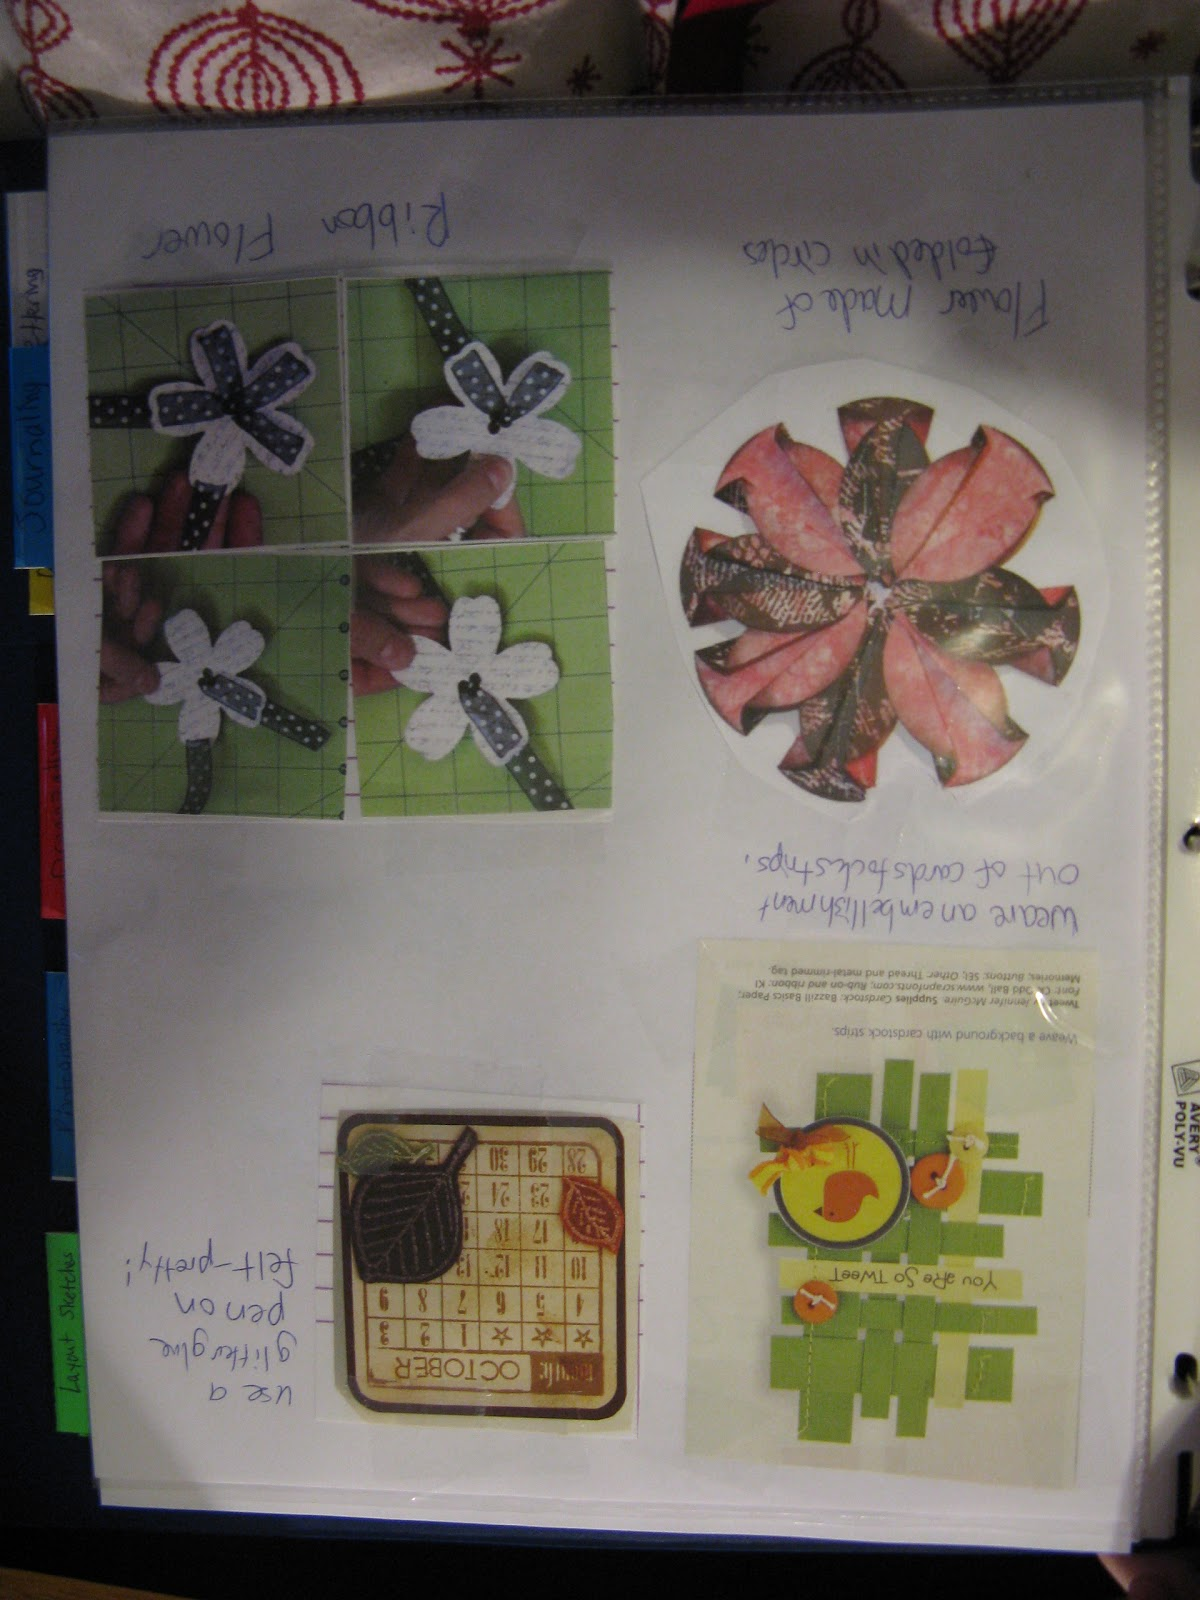 How to make scrapbook binder - Embellishments I Often Put Pictures Of Small Details For Pages That I Like Here Such As Ribbon Flowers They Don T So Much Involved How To Make The Item